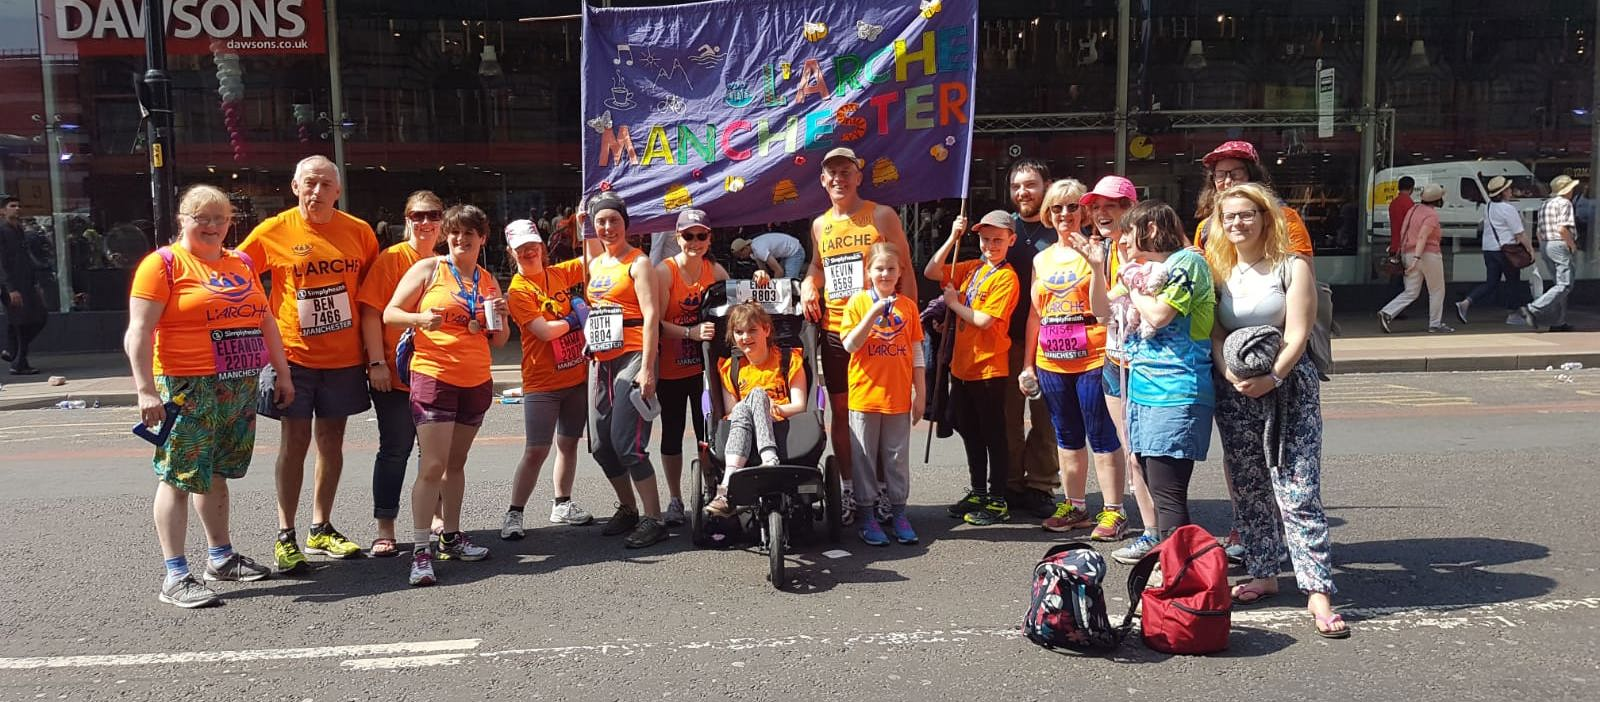 L'Arche Manchester is running the Manchester 10k